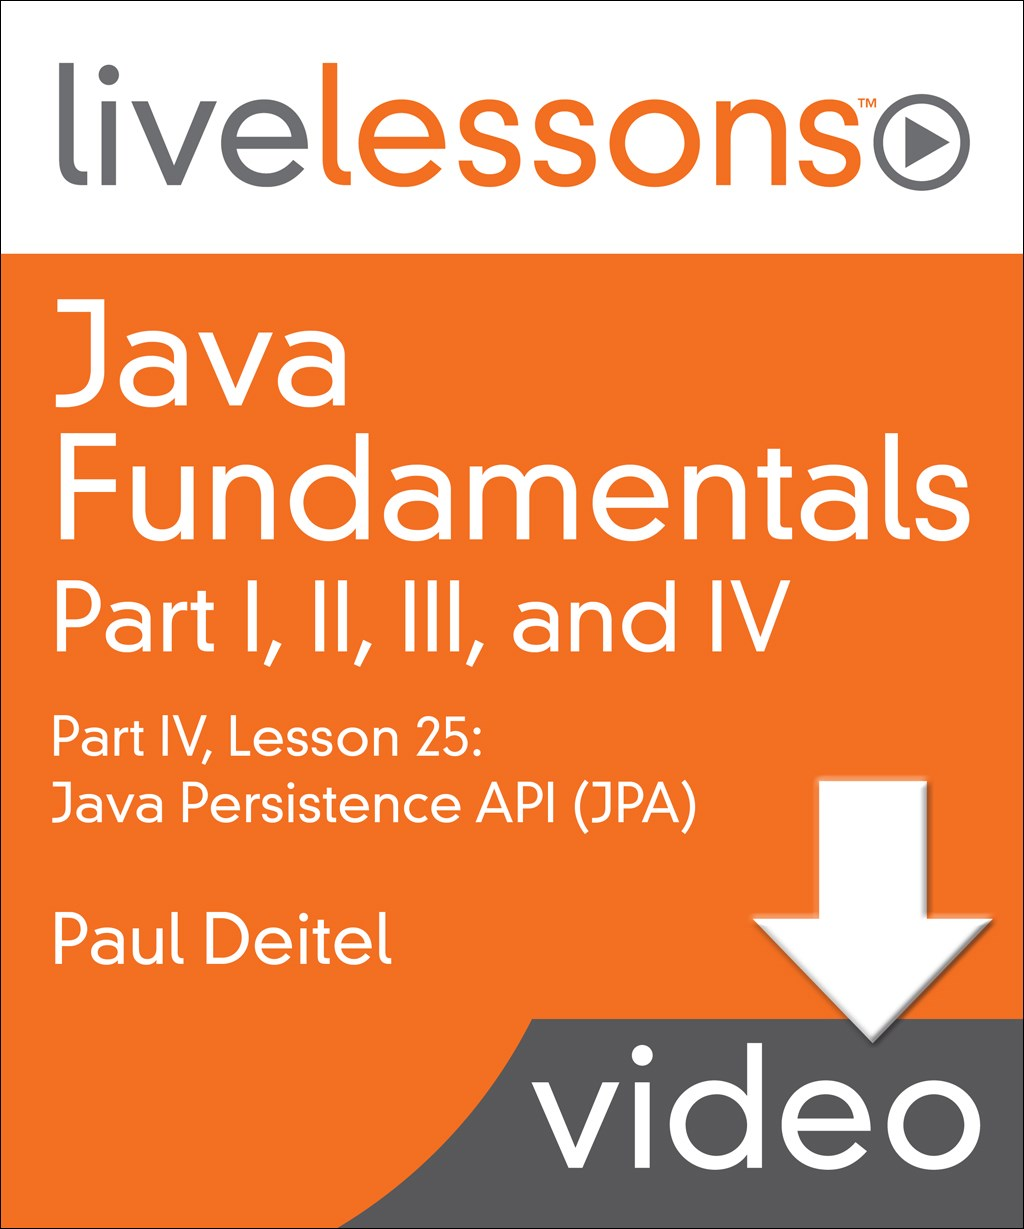 Java Fundamentals LiveLessons Parts I, II, III, and IV (Video Training): Part IV, Lesson 25: Java Persistence API (JPA), Downloadable Version